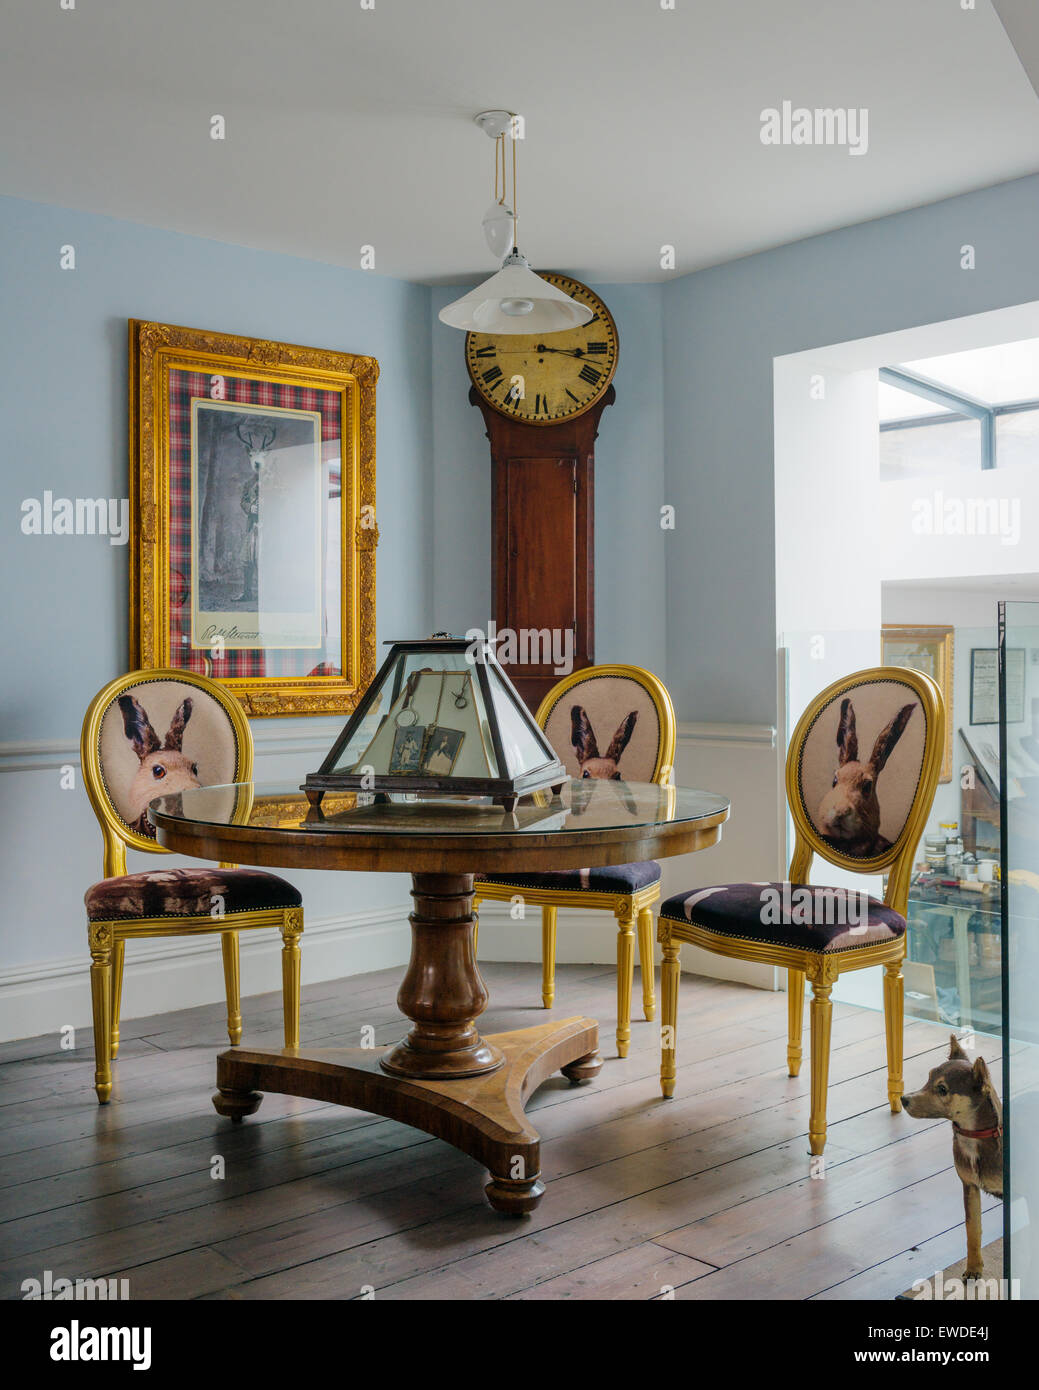 Three Gilt Dining Chairs Covered In Cory Visitorian Hare Head Fabric Round  Circular Table In Room With Antique Clock